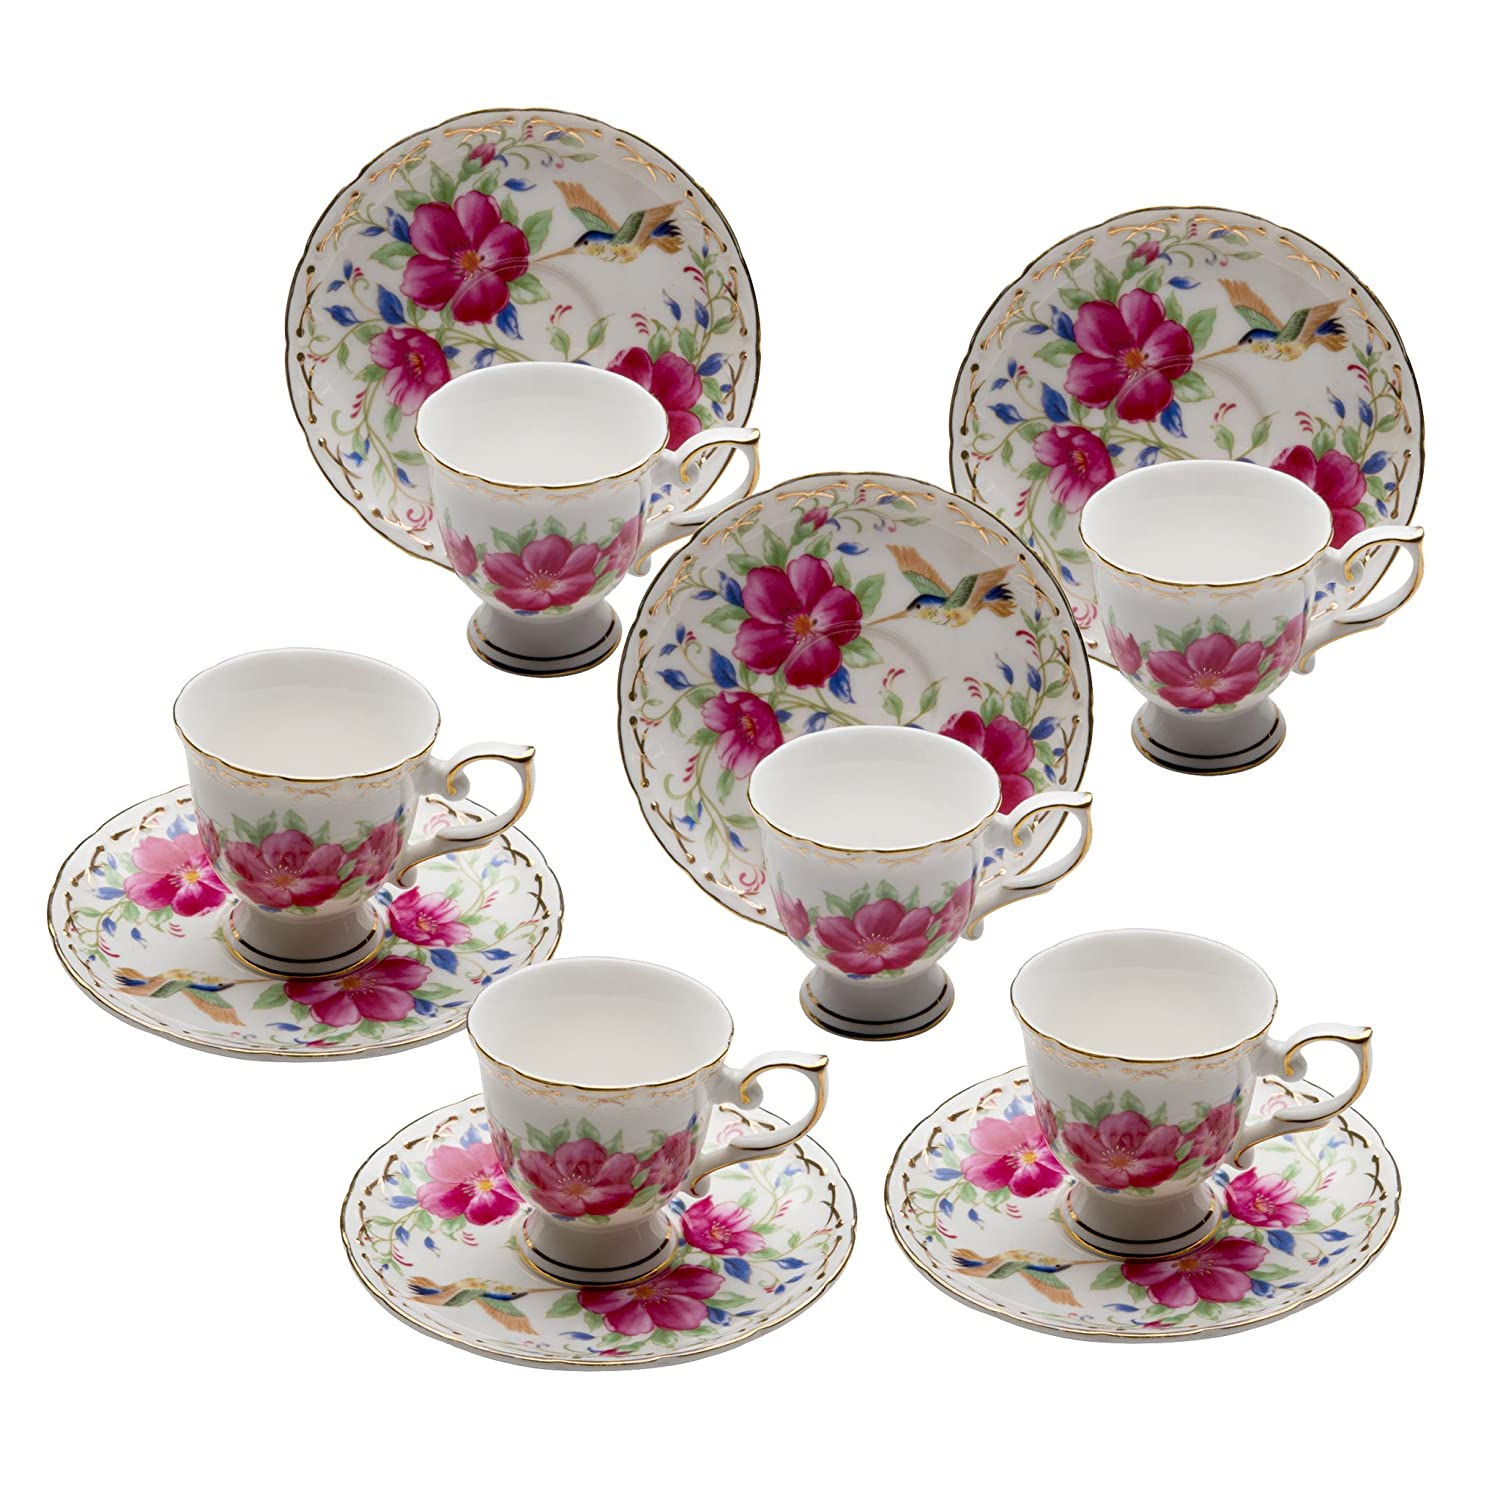 Grace Teaware Fine Porcelain Espresso Cup and Saucer Set of 6, 3-Ounce (Floral Hummingbird) 35331D/6